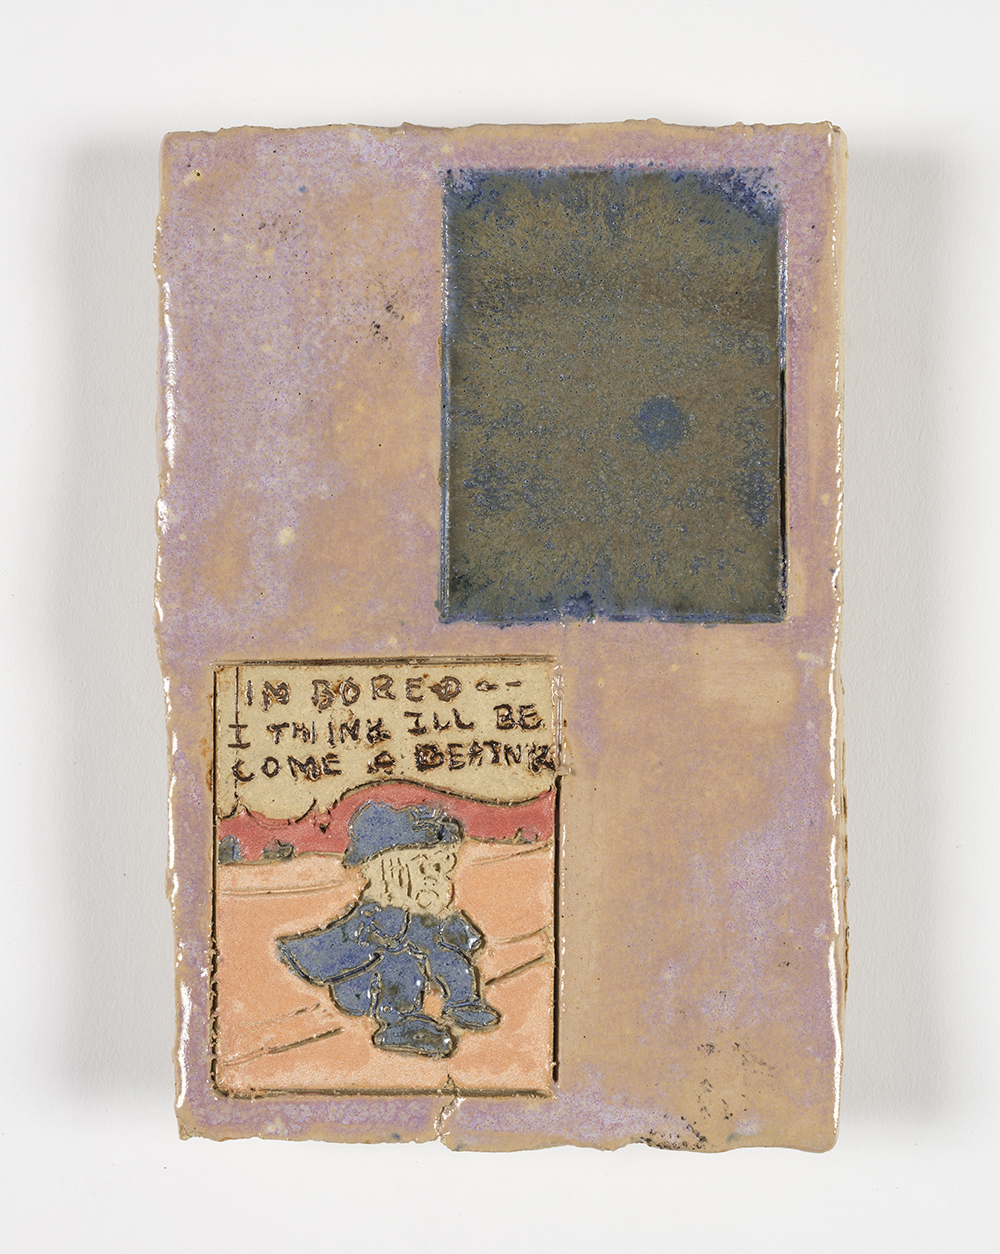 Kevin McNamee-Tweed.<em> Beat</em>, 2019. Glazed ceramic, 7 x 4 3/4 inches (17.8 x 12.1 cm)